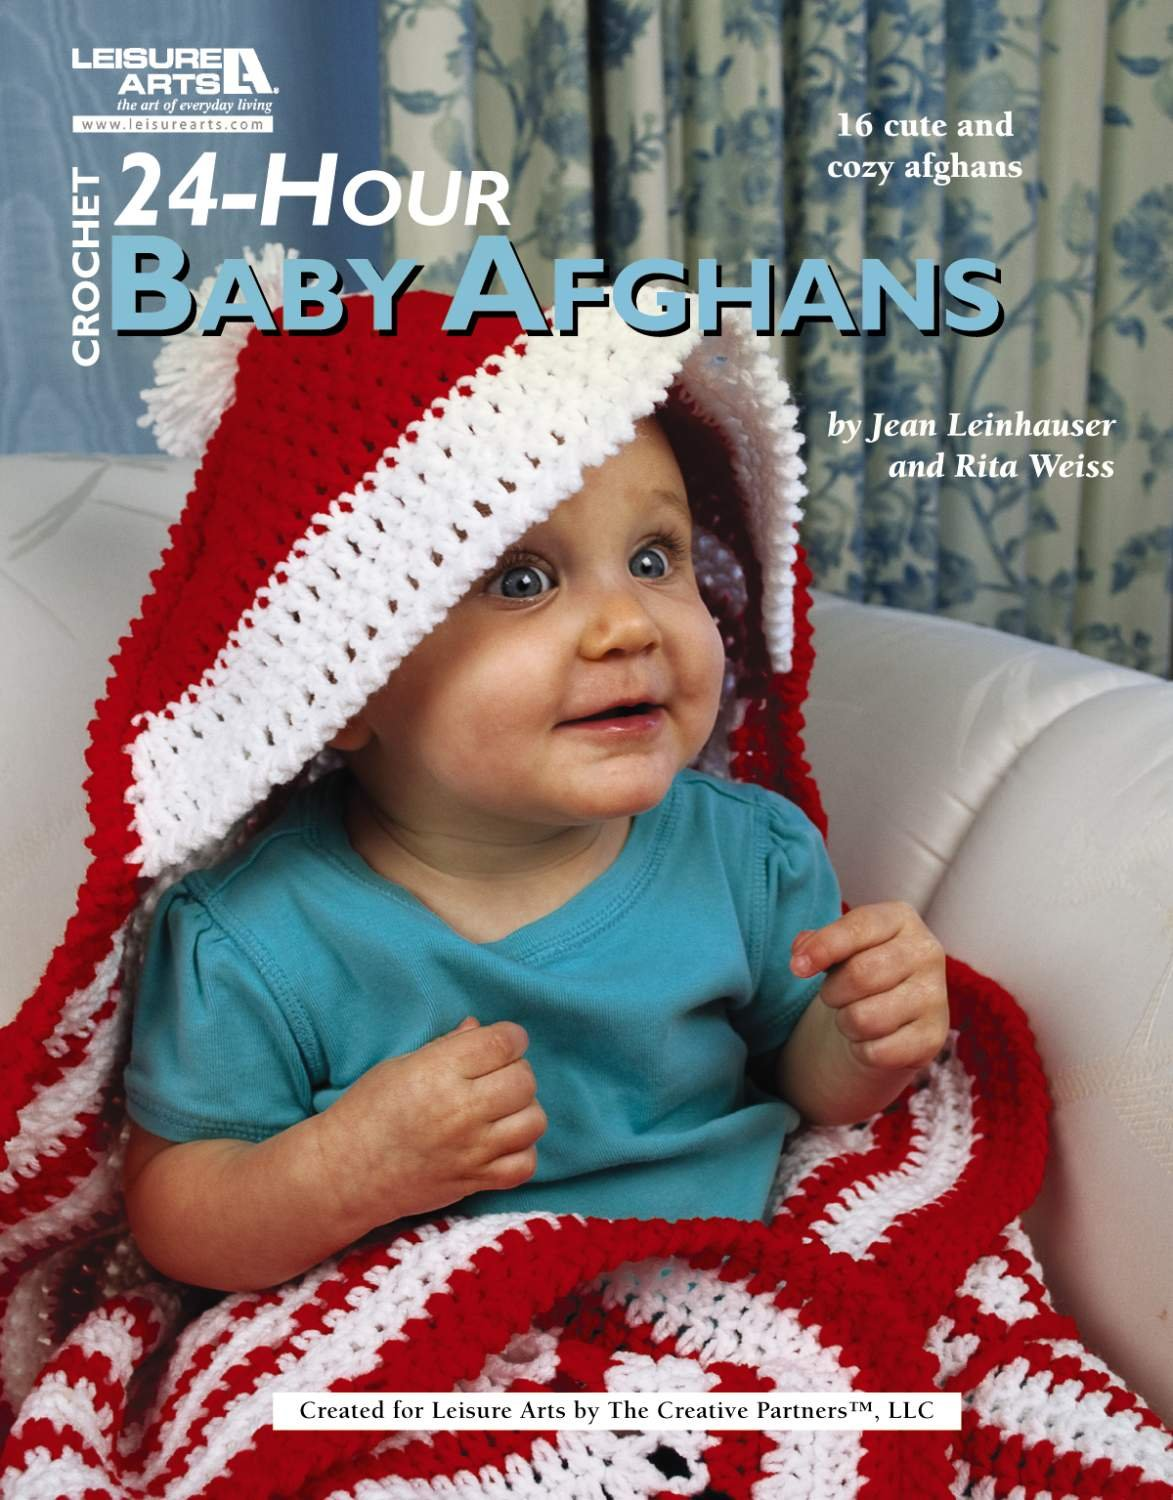 Shower of Cables Baby Afghans Crochet Pattern Booklet Leisure Arts